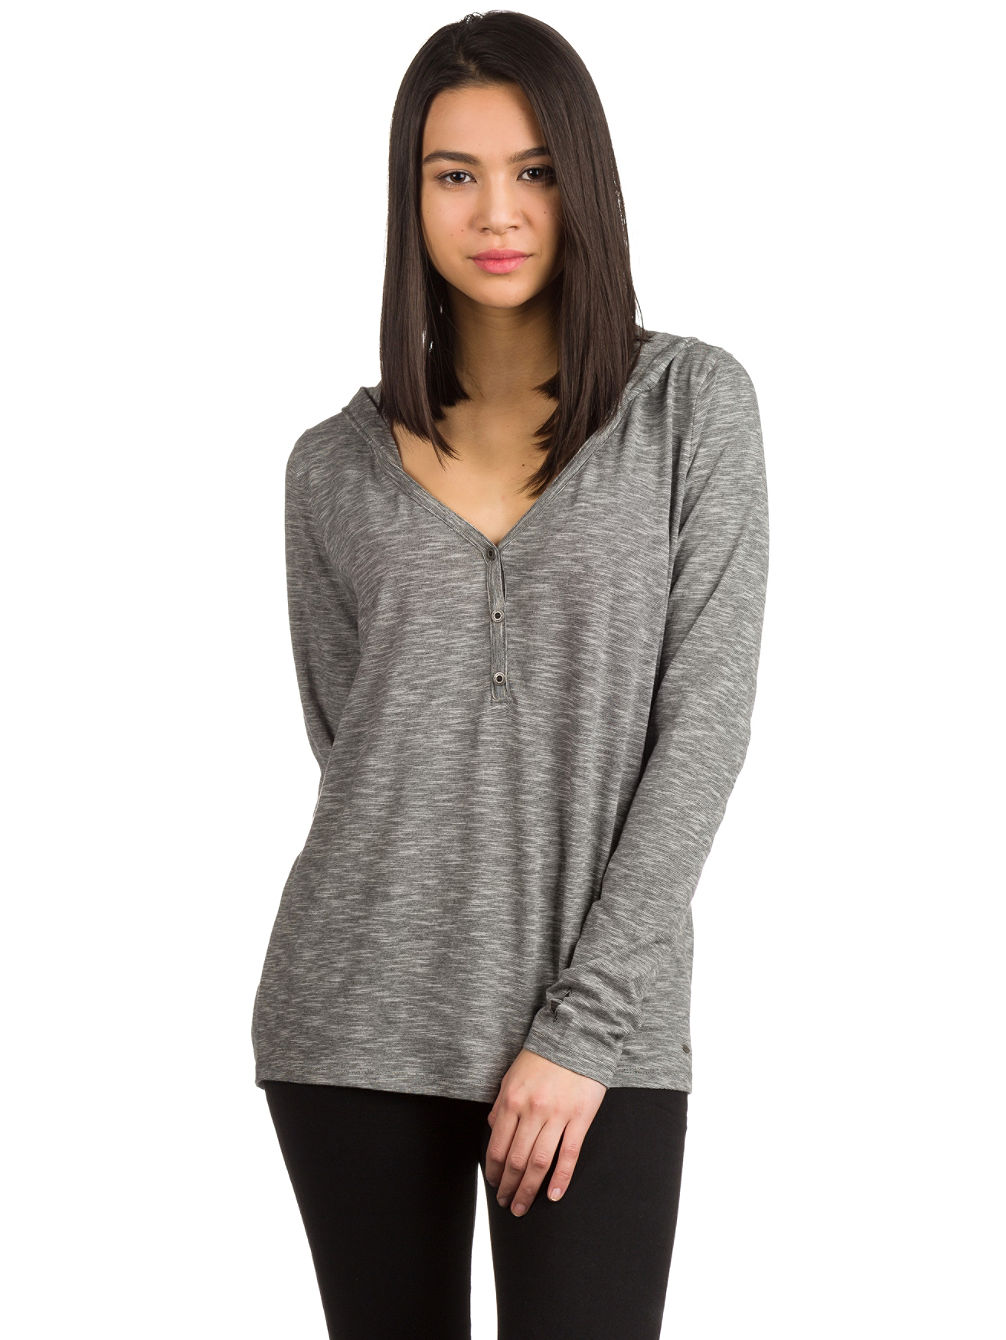 The long sleeves tees for active women are perfect for yoga, gymmimg, running or any kind of workouts armed with moisture-wicking features, offering a fine blend of comfort and style. Make the best buy online of high quality workout t-shirts for women from Alanic Activewear, the best online retail store of .